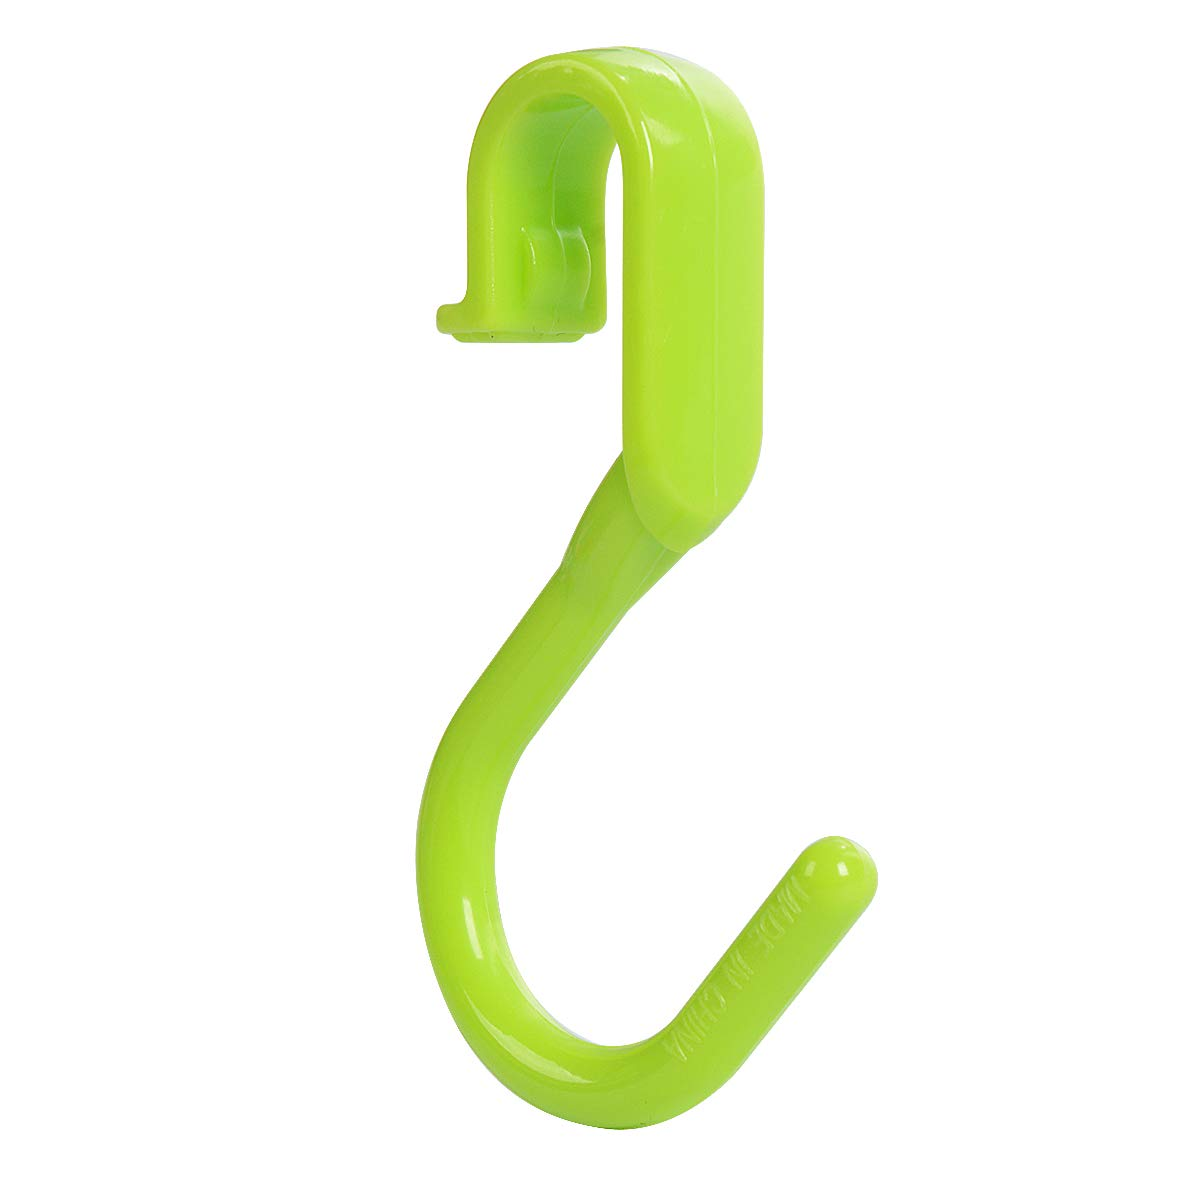 Plastic Small Home Storage Hooks for Kitchen Bathroom Garage Gadget 30Pcs Green Saim S Hooks Utility Hooks Hangers for Hanging Kitchenware Spoons Clothes Bags Keys